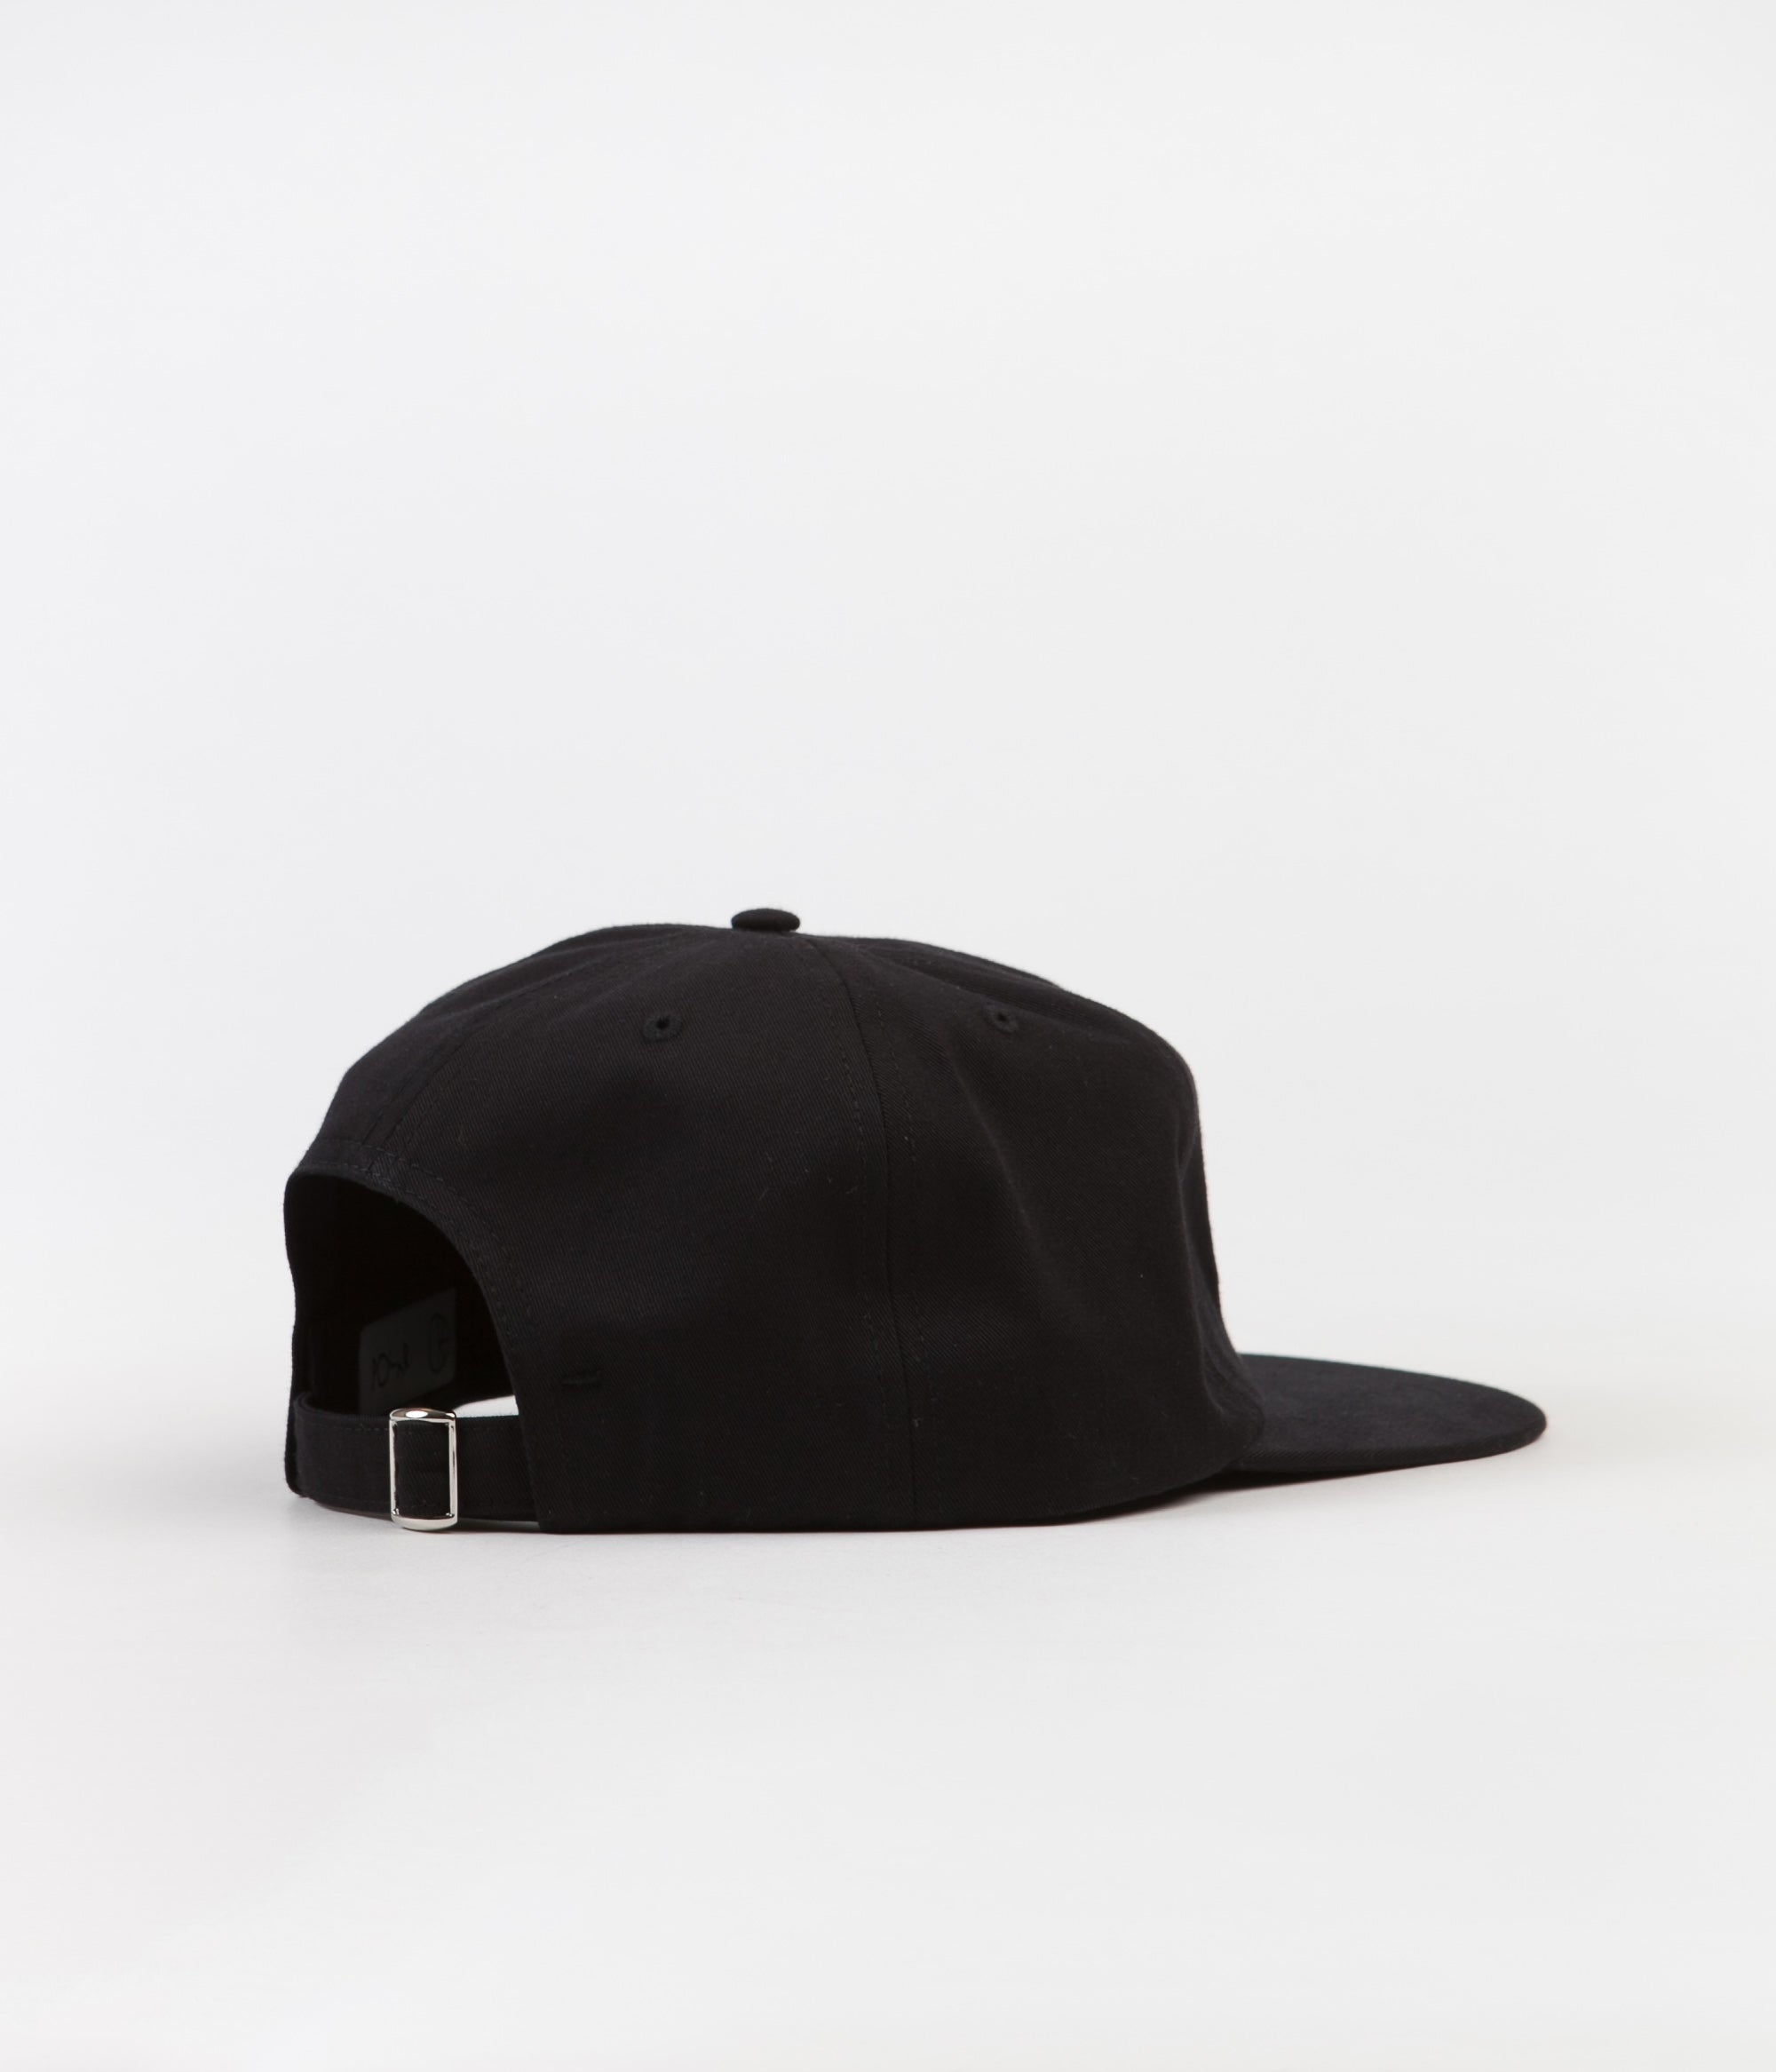 Polar Rat Cap - Black